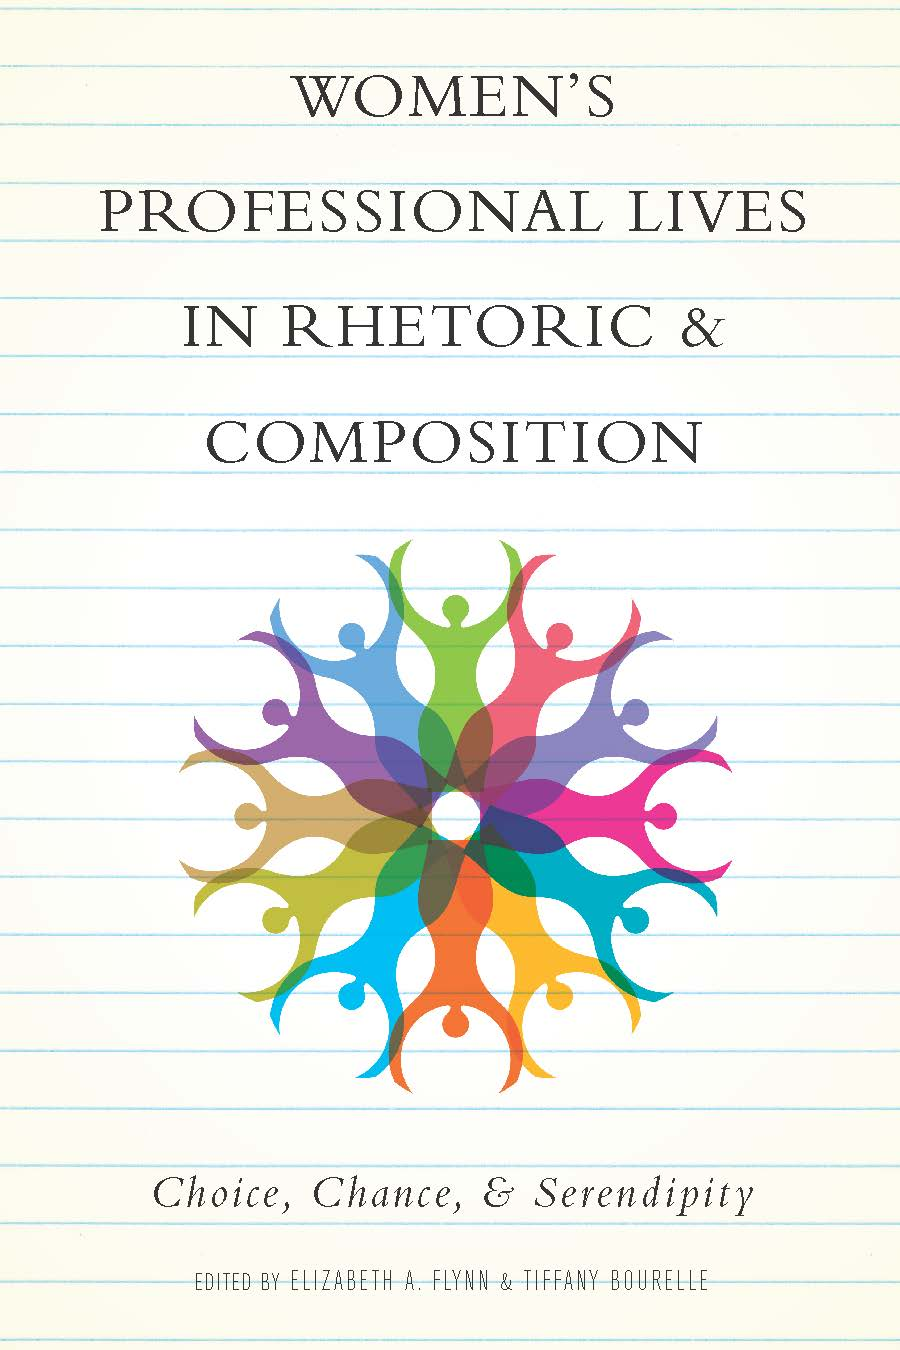 Book cover of Flynn and Bourelle's edited collection. The title text is written on college-ruled notebook paper, and there is a colorful floral-like design made from the outlines of women's bodies in the center of the cover.